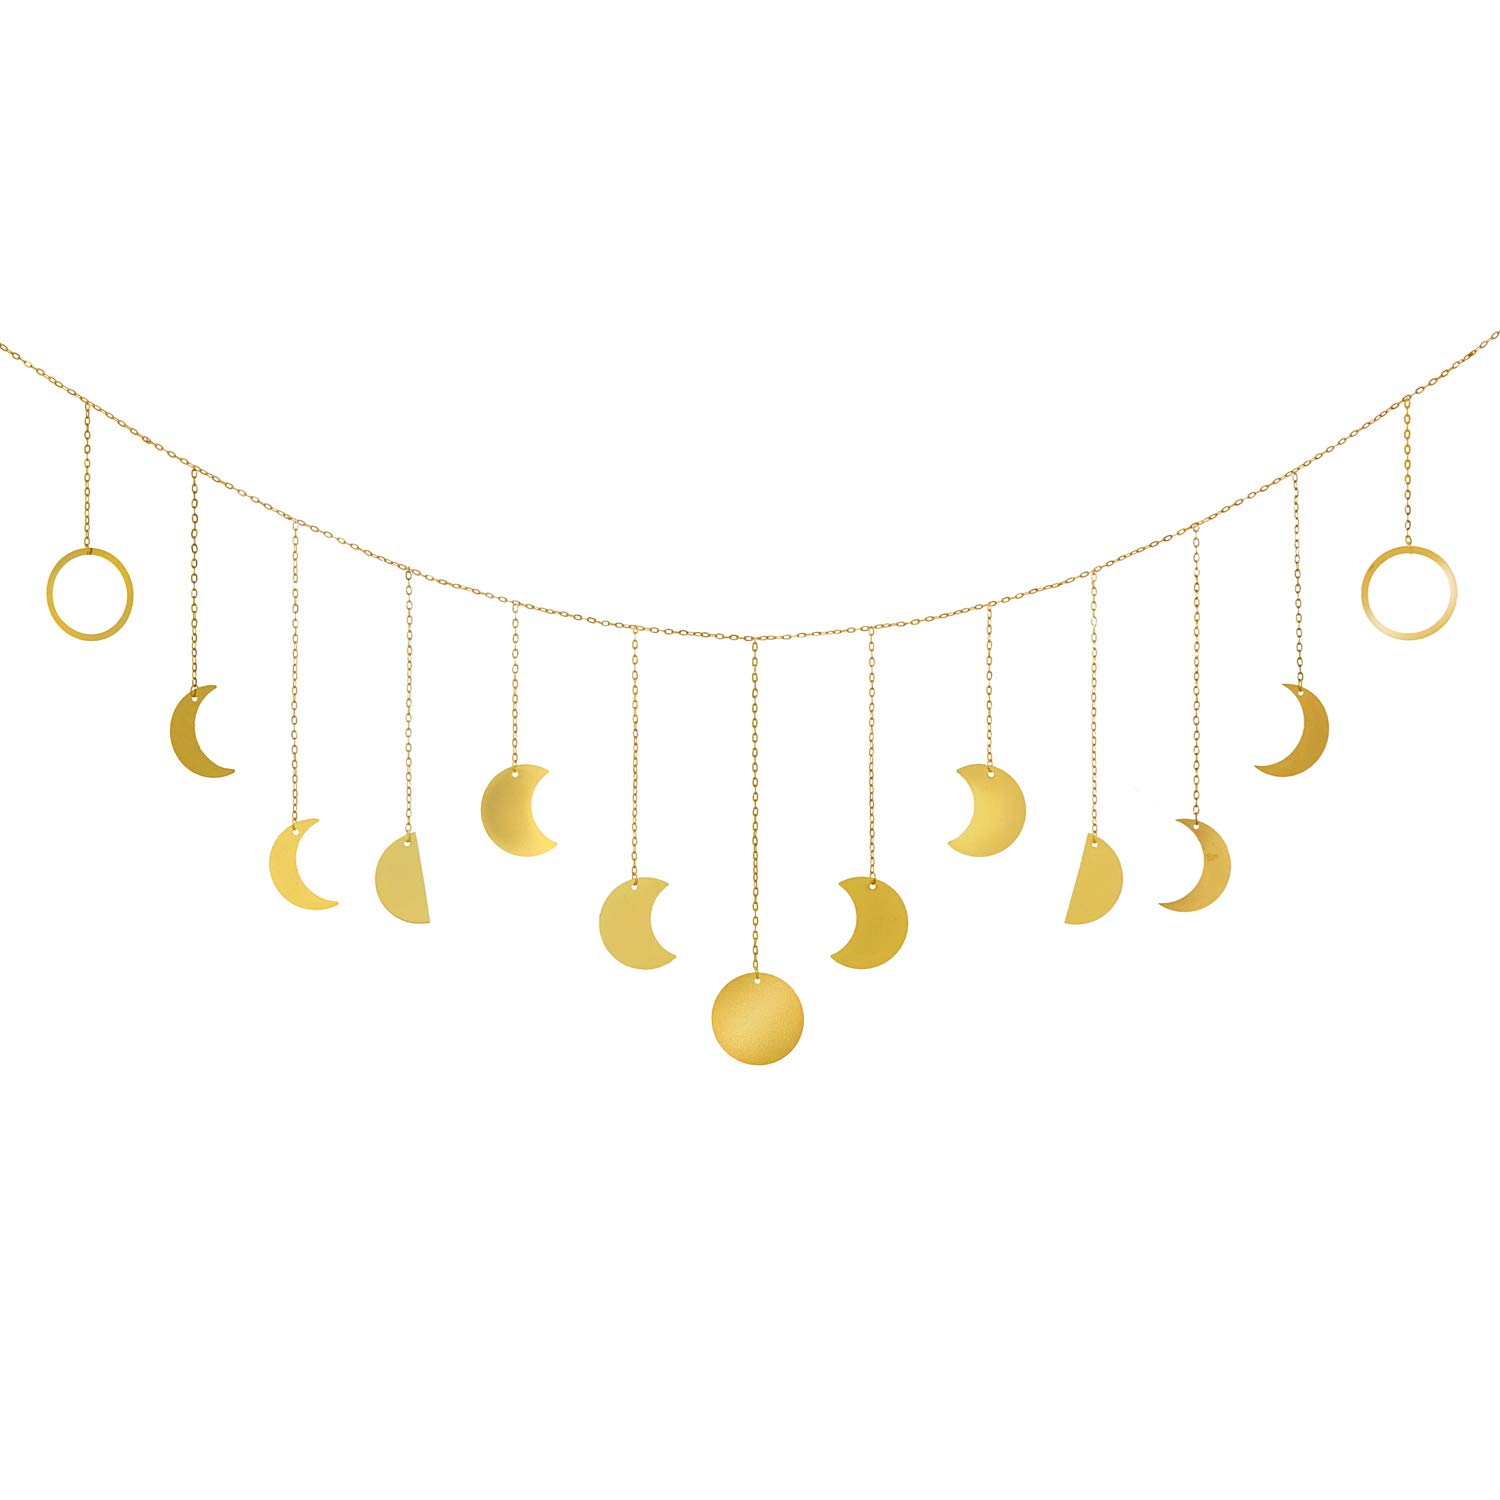 Mkono Moon Phase Garland with Chains Boho Gold Shining Phase Wall Hanging Holiday Ornaments Moon Hang Art Room Headboard Decor for Bedroom Living Room Apartment Nursery Room Dorm, 55""